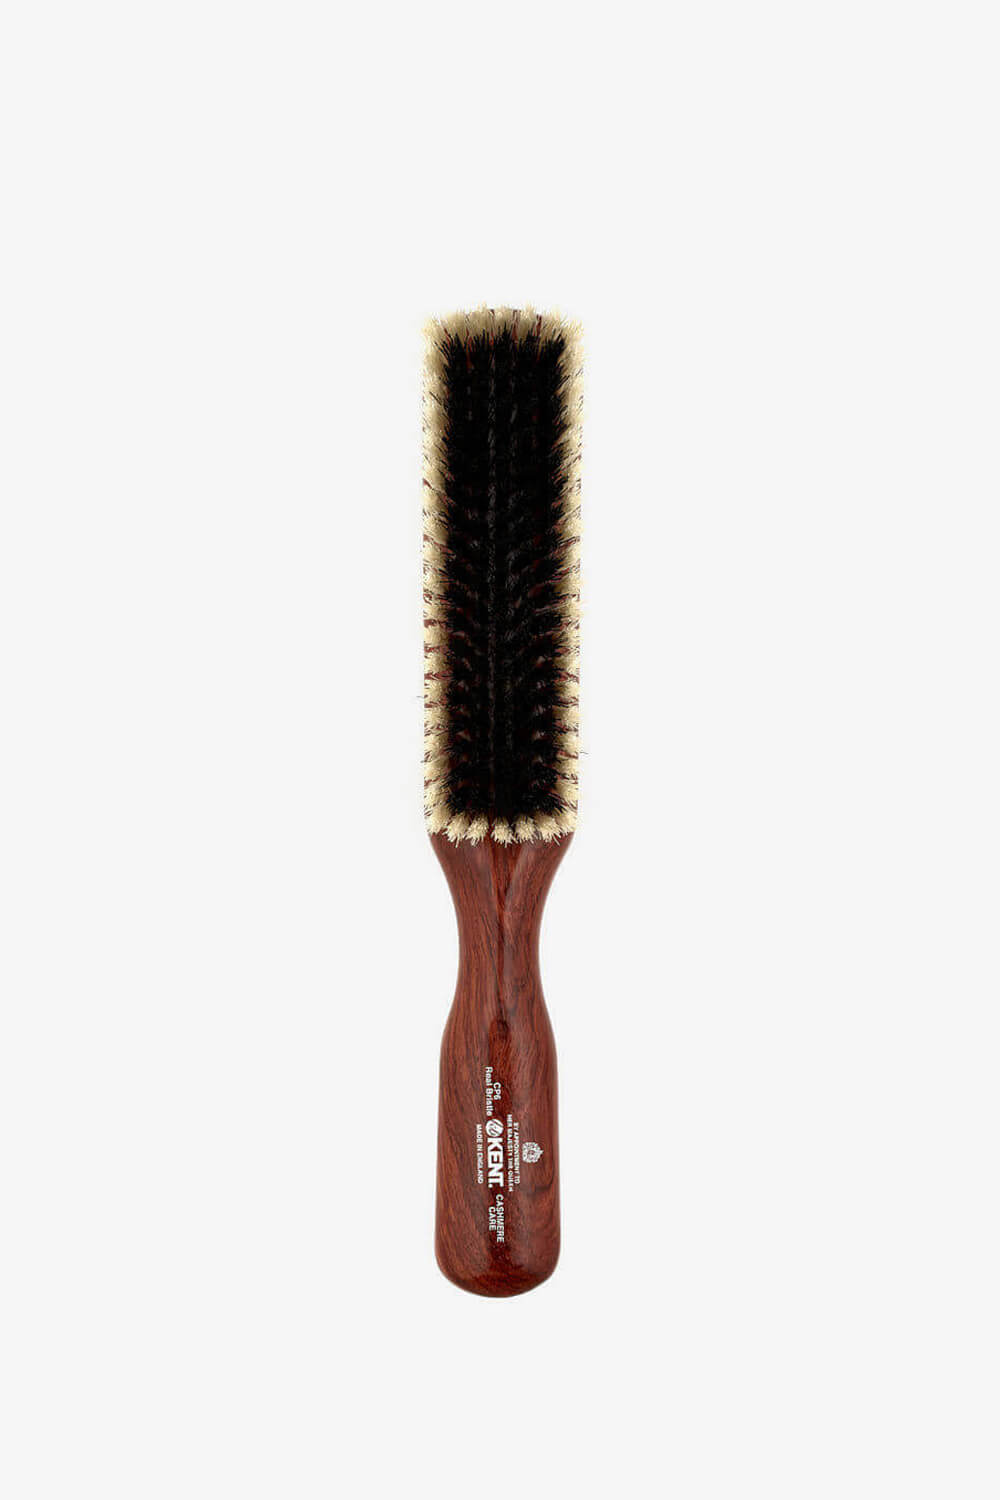 CP6 Kent brush Cashmere Care RESTYLE Finland Arkive atelier. Clothes brush for wool and cashmere clothes